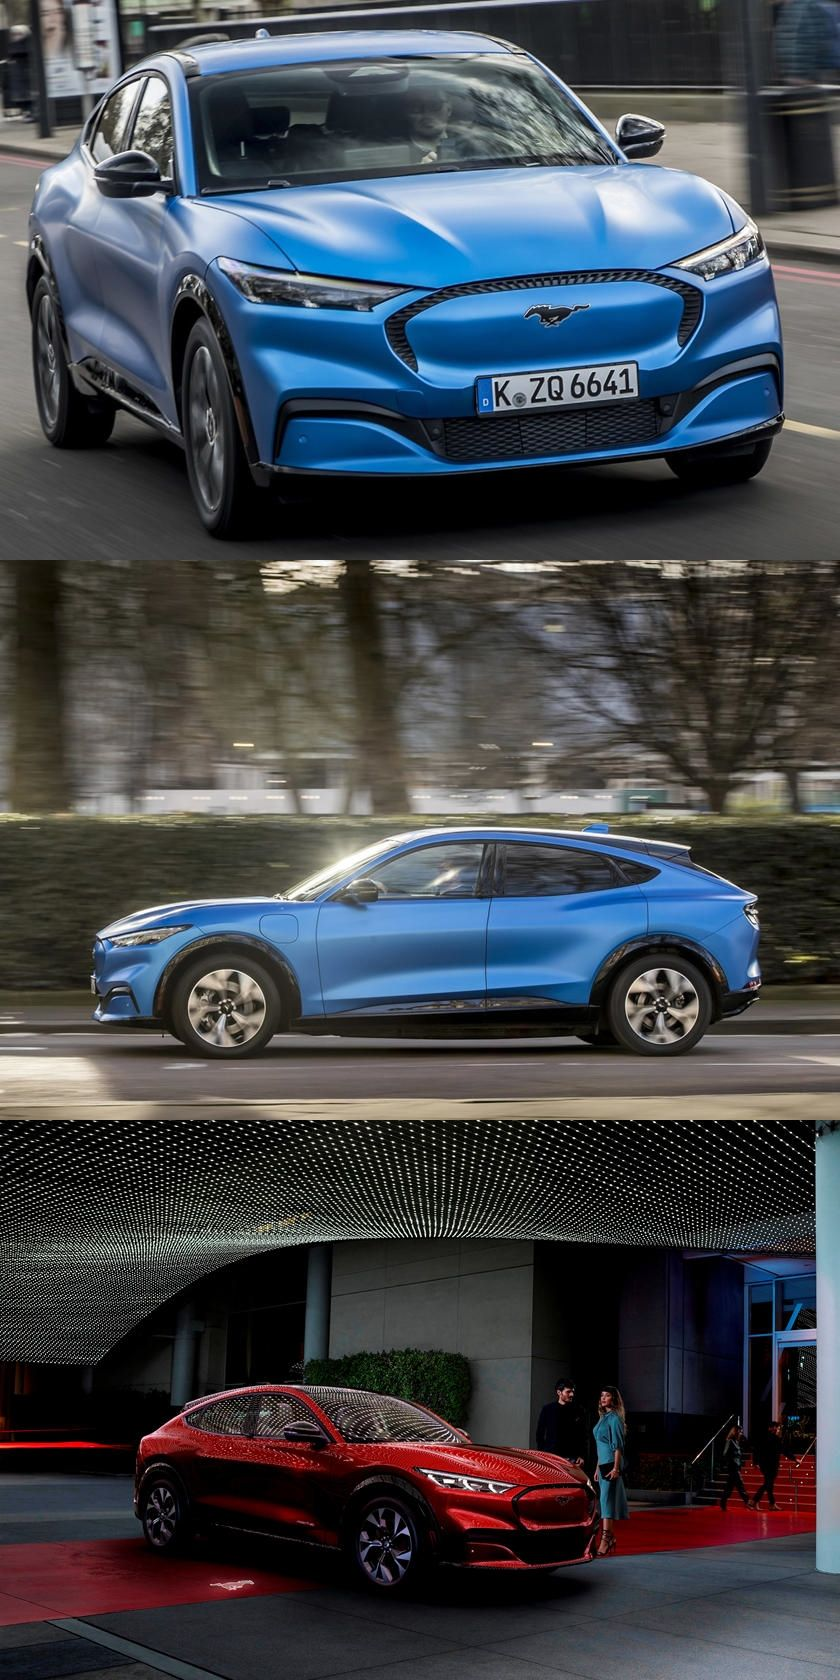 Ford And Gm Don T Love Electric Cars As Much As They Say Detroit S Two Biggest Automakers Aren T Quite Charging Headfirst In In 2020 Electric Cars Ford American Sales